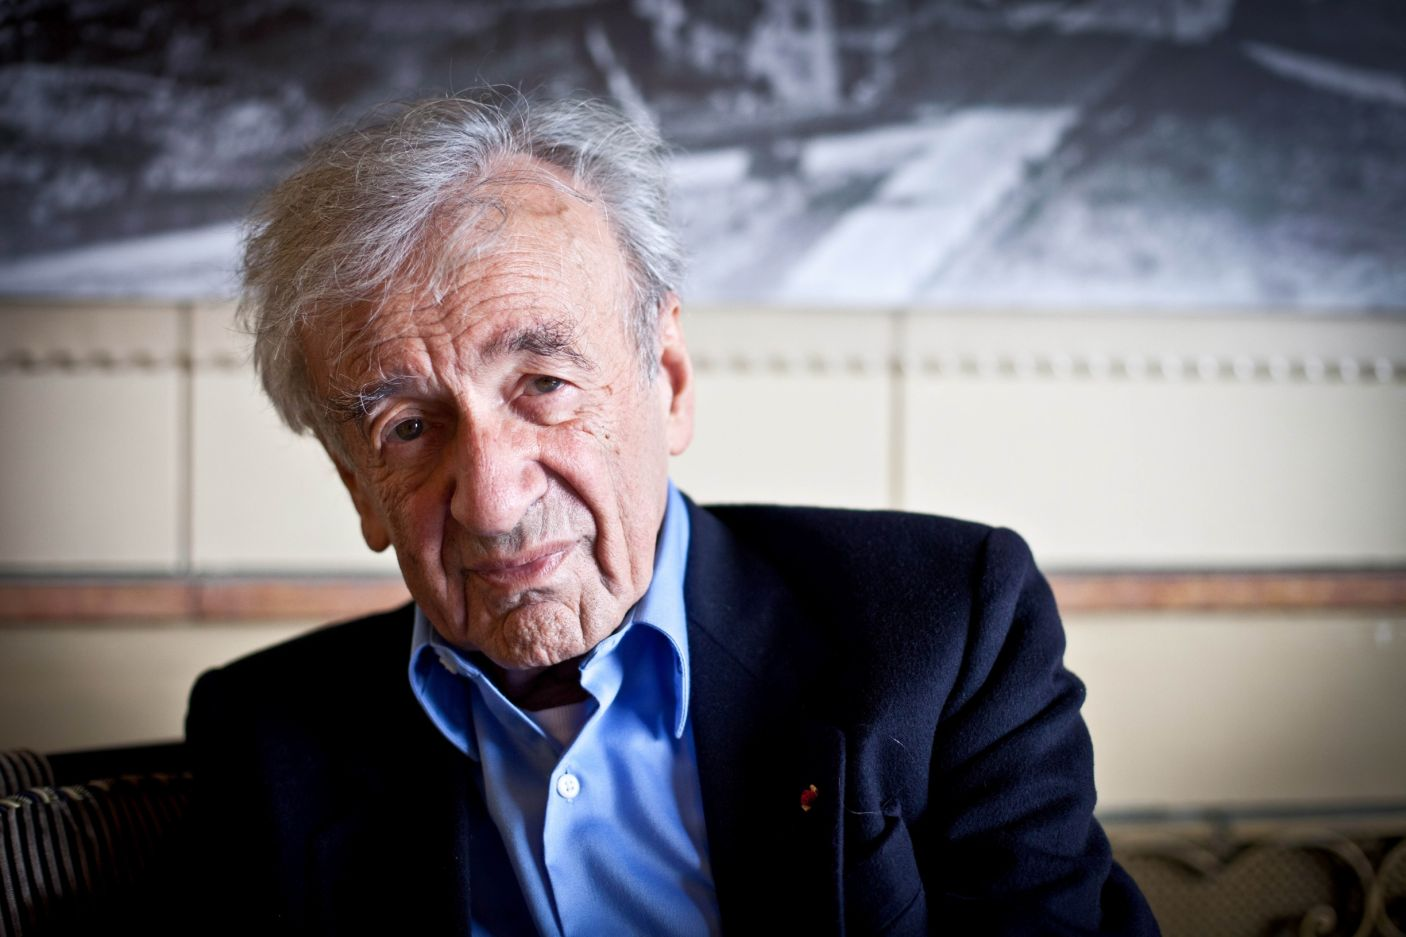 """elie wiesel and the holocaust Holocaust survivor elie wiesel last survivor dies,"""" holocaust scholar deborah lipstadt said in an interview with the washington post """"but in elie wiesel."""